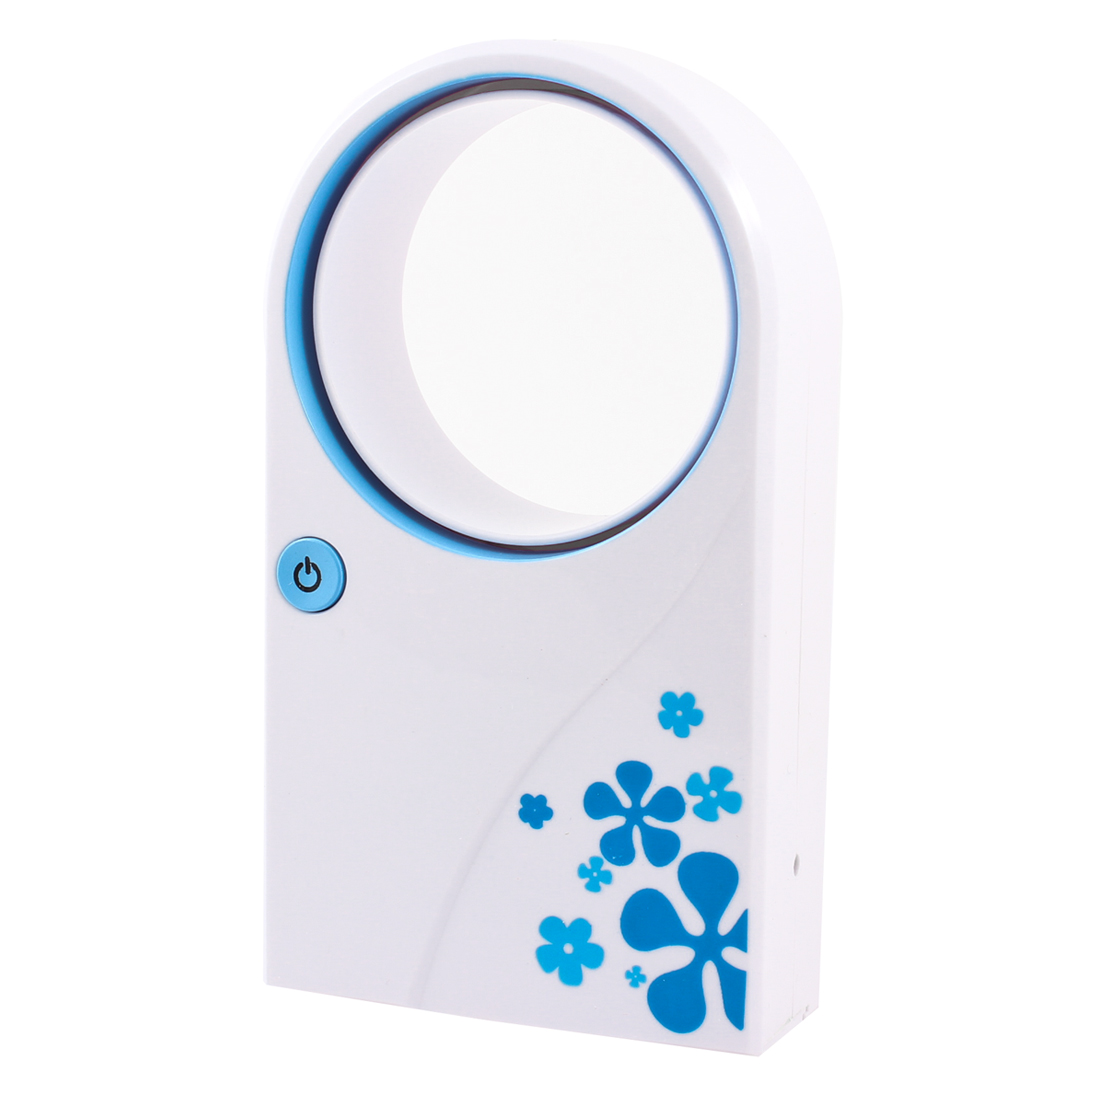 USB Battery Power Hand Held Air Condition No Leaf Fan White Blue